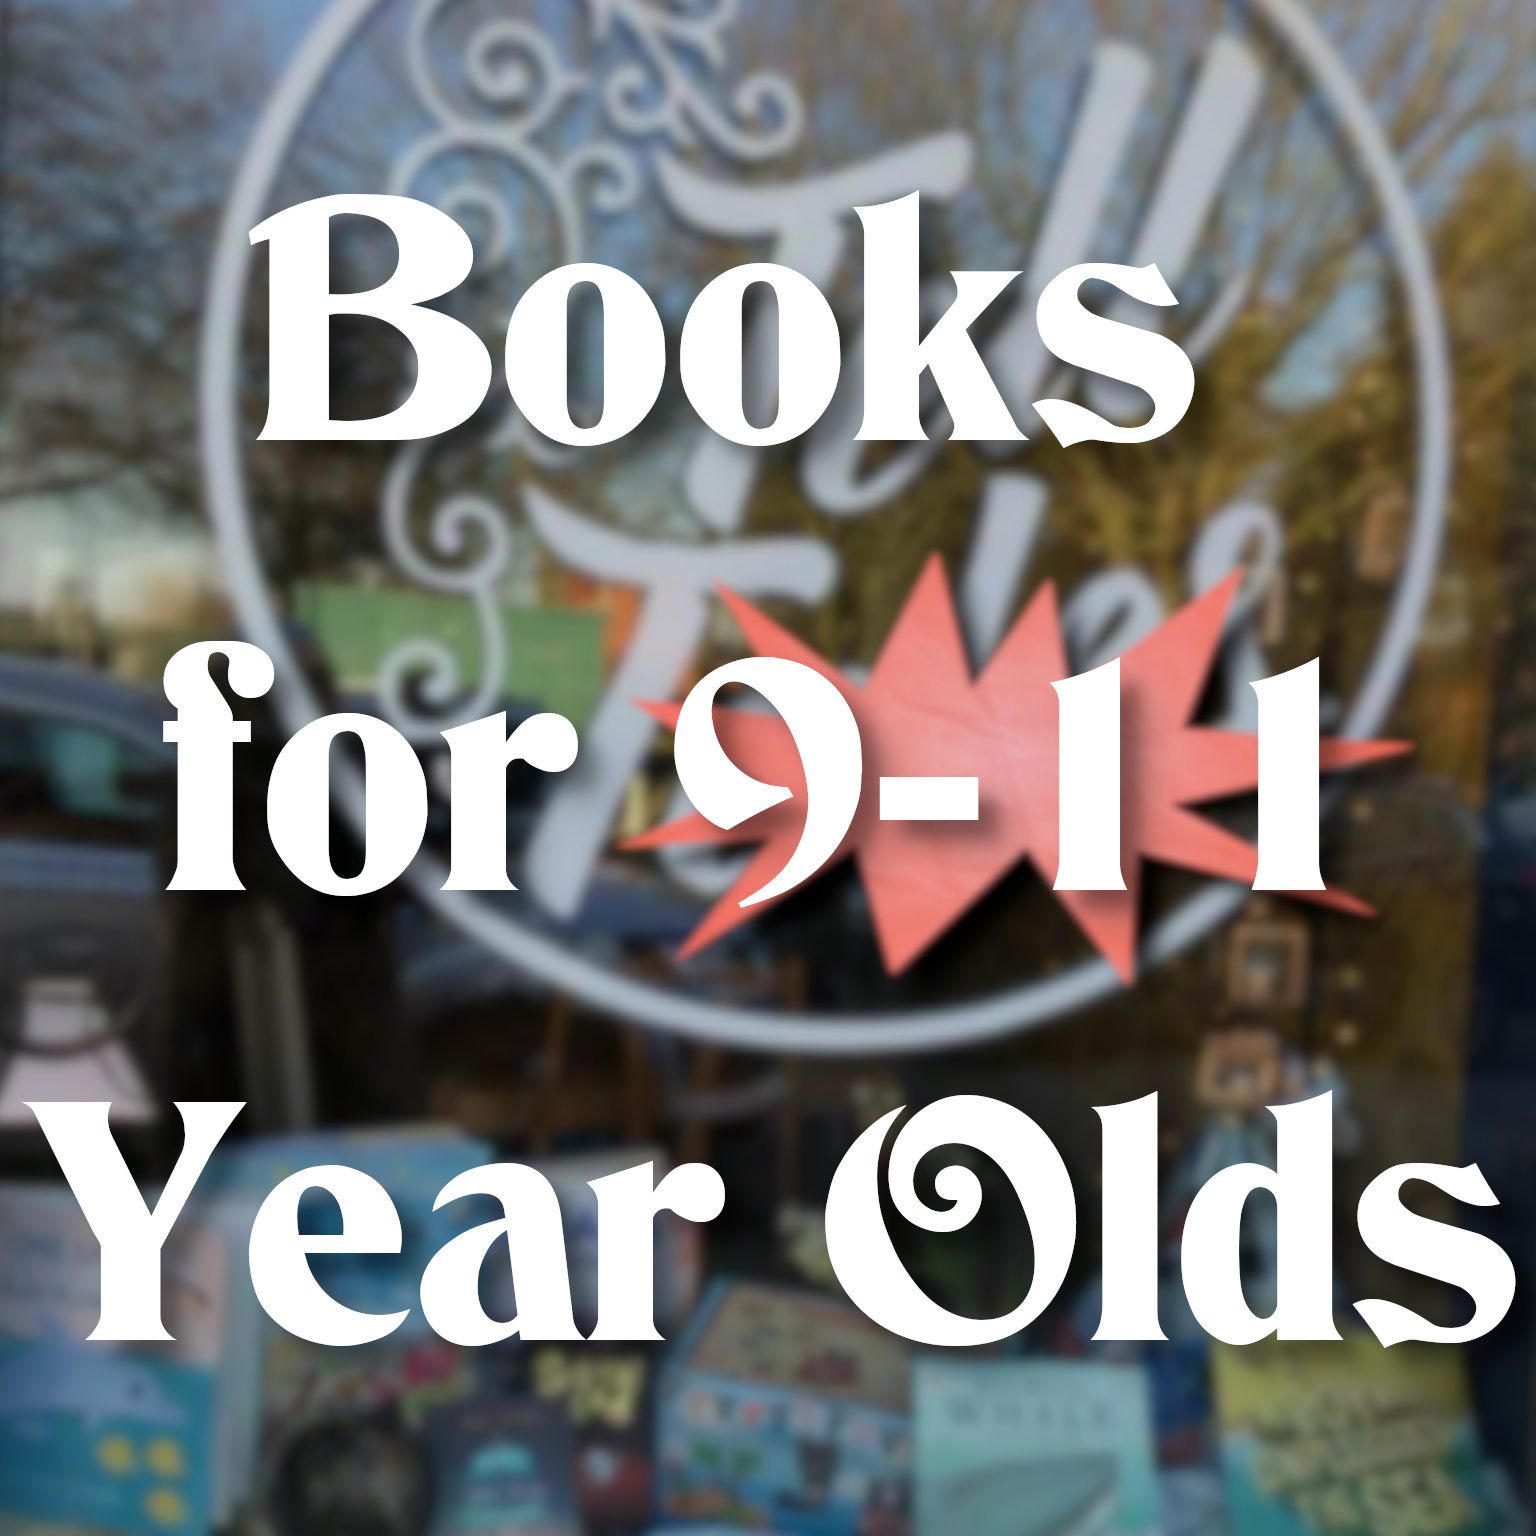 Books for 9-11year olds